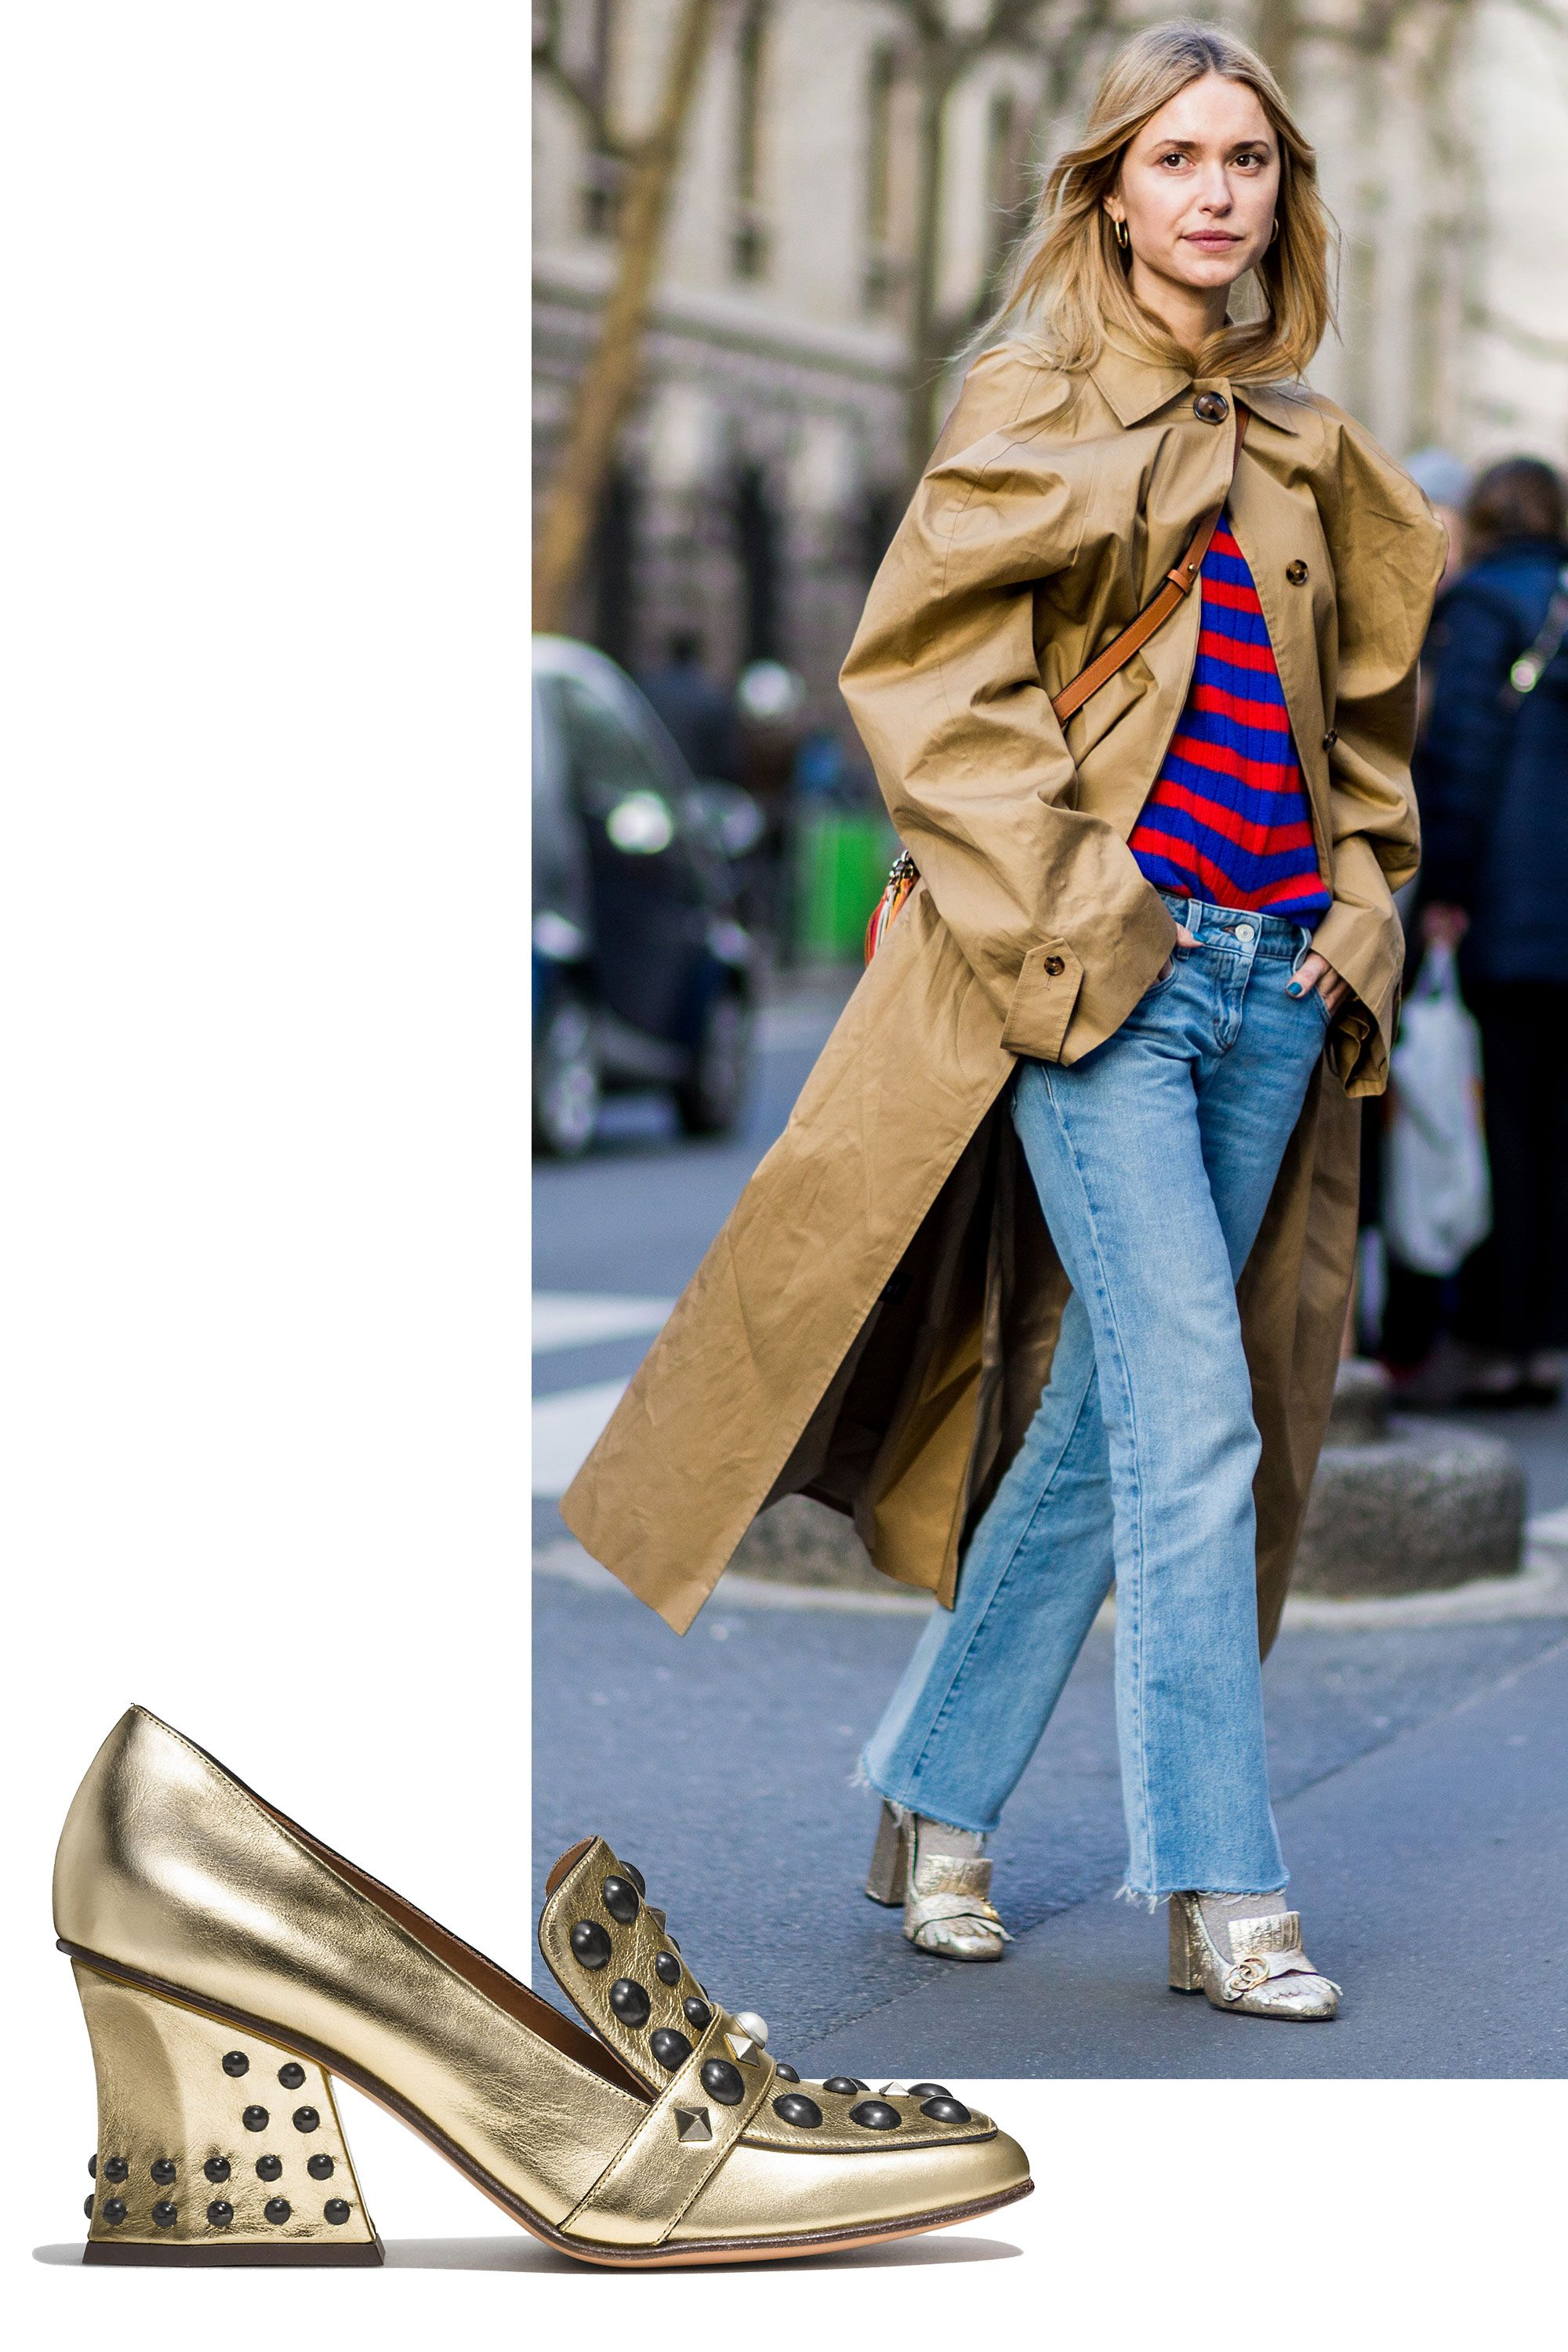 """<p>Wearing a metallic shoe in a blocky classic cut adds flair to any casual outfit—even sporty stripes and jeans! </p><p><br> </p><p><em data-redactor-tag=""""em"""">Coach 1941 High Vamp Loafer With Studs, $395, </em><a rel=""""noskim"""" href=""""http://www.coach.com/coach-designer-flats-high-vamp-loafer-with-studs/Q8916.html?CID=D_B_HBZ_11833"""" target=""""_blank""""><em data-redactor-tag=""""em"""">coach.com</em></a></p>"""